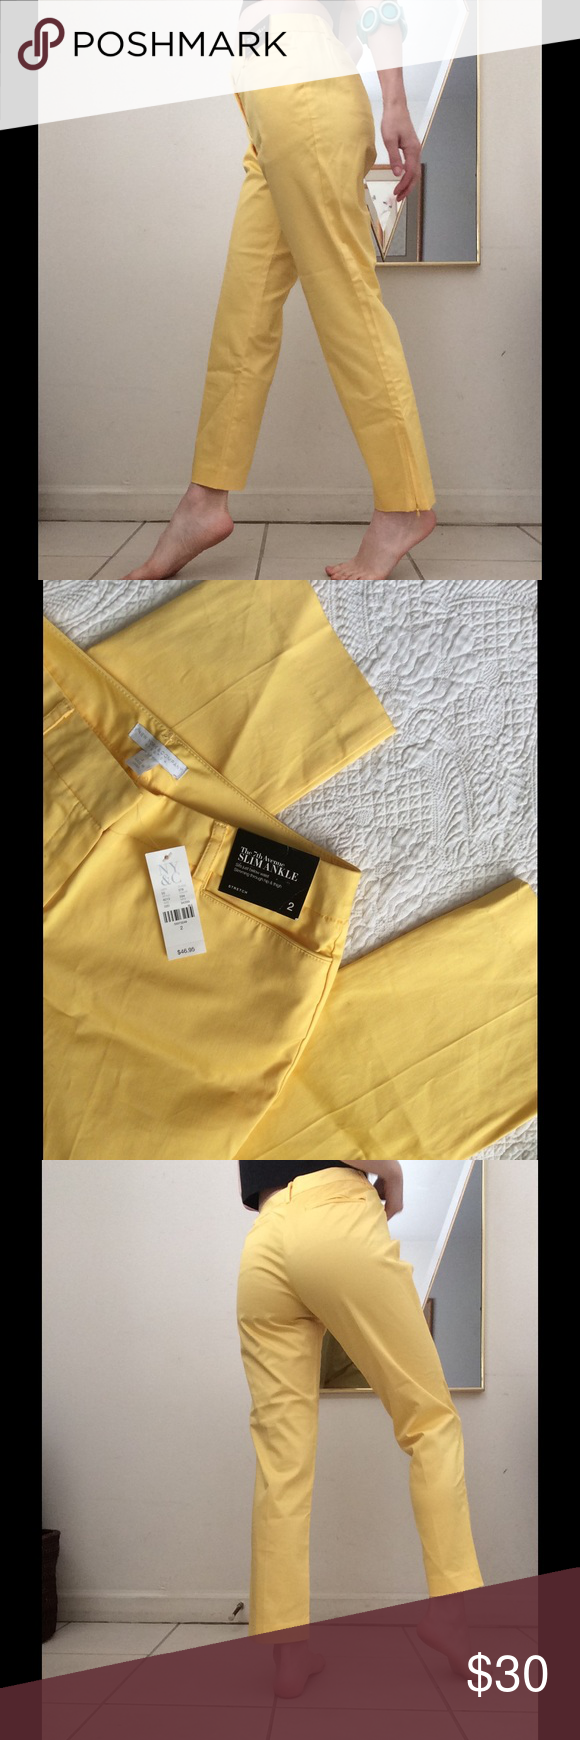 NY & Co. Mellow Yellow Zip Ankle Capris Slacks Excellent-New condition. No stains or holes. Smoke free home. Suit style back pockets. Zippers on hems. Adorable sexy flood pants for summer. Skinny leg. Shine bright this summer vacation. Sunny. Wear for a picnic in the sunshine. Classy. Happy basic. New York & Company Pants Ankle & Cropped